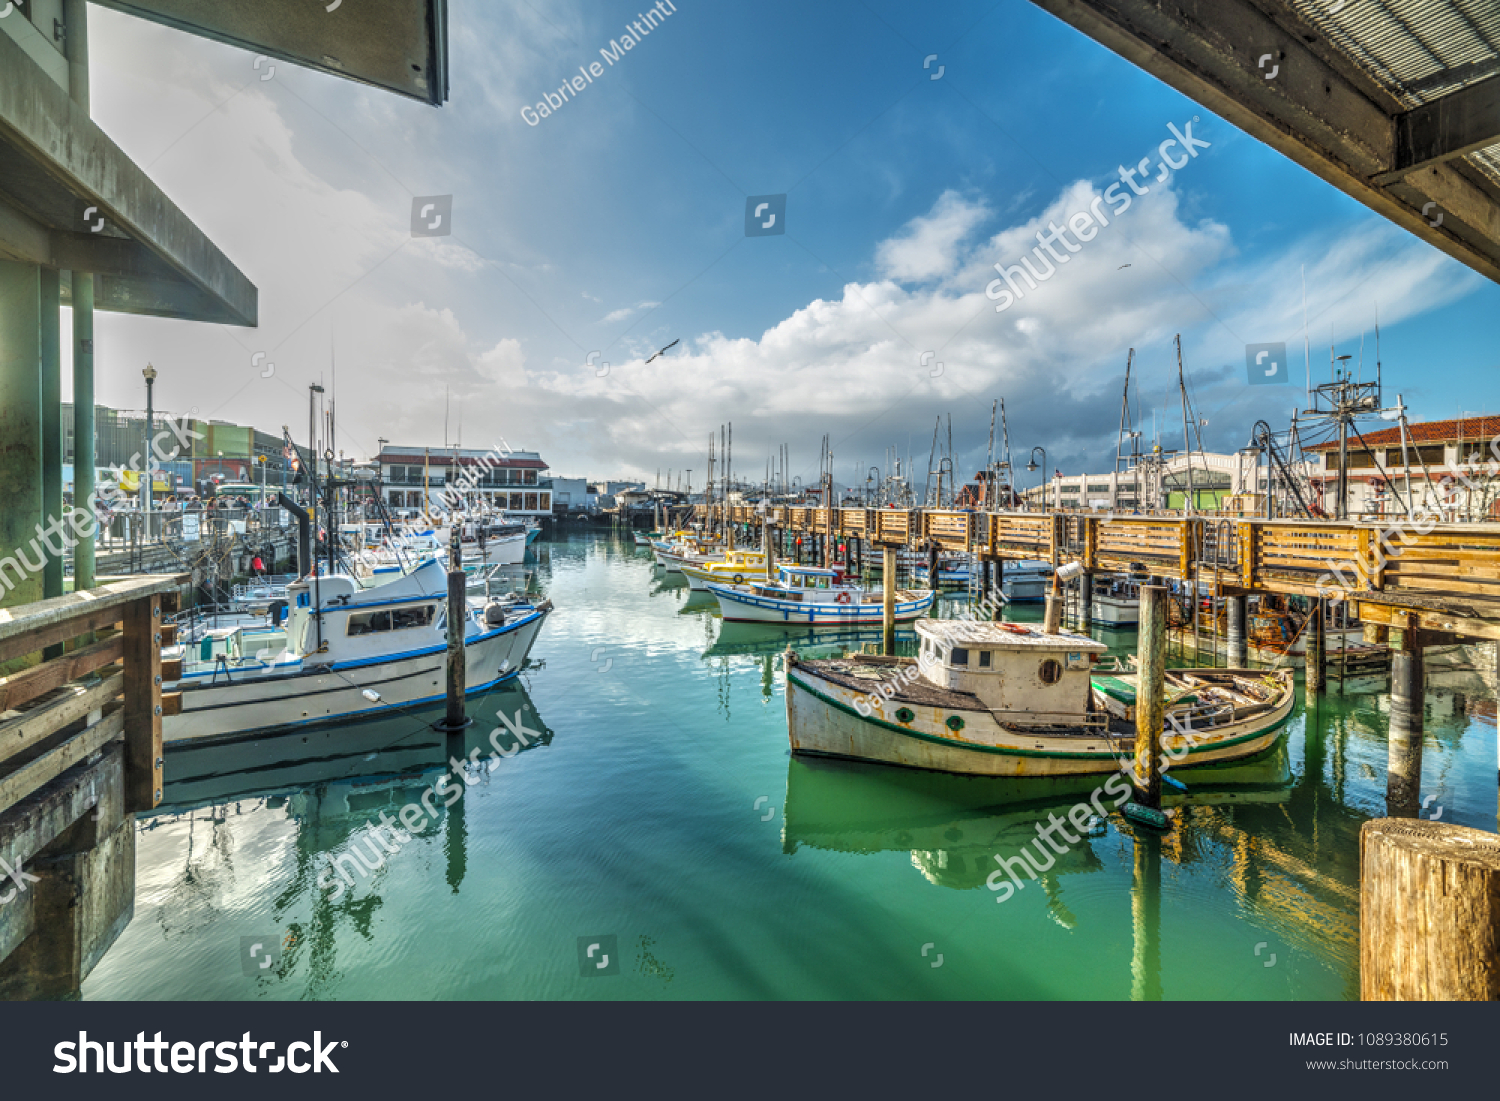 Boats in Fisherman's wharf in San Francisco. California, USA #1089380615